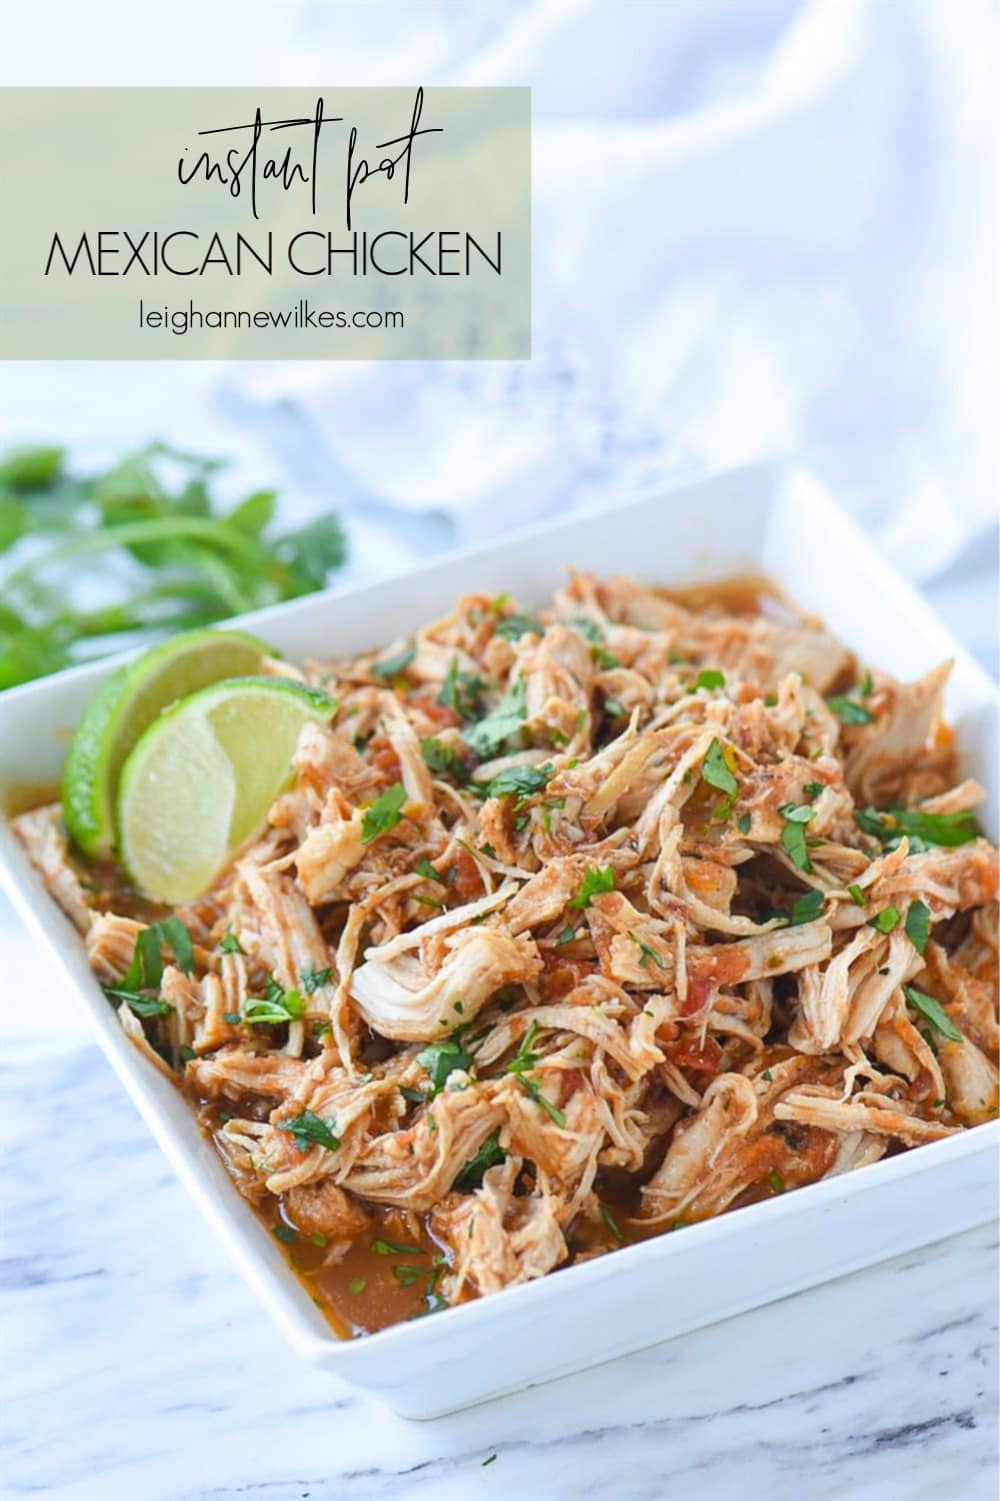 Shredded mexican chicken in a bowl